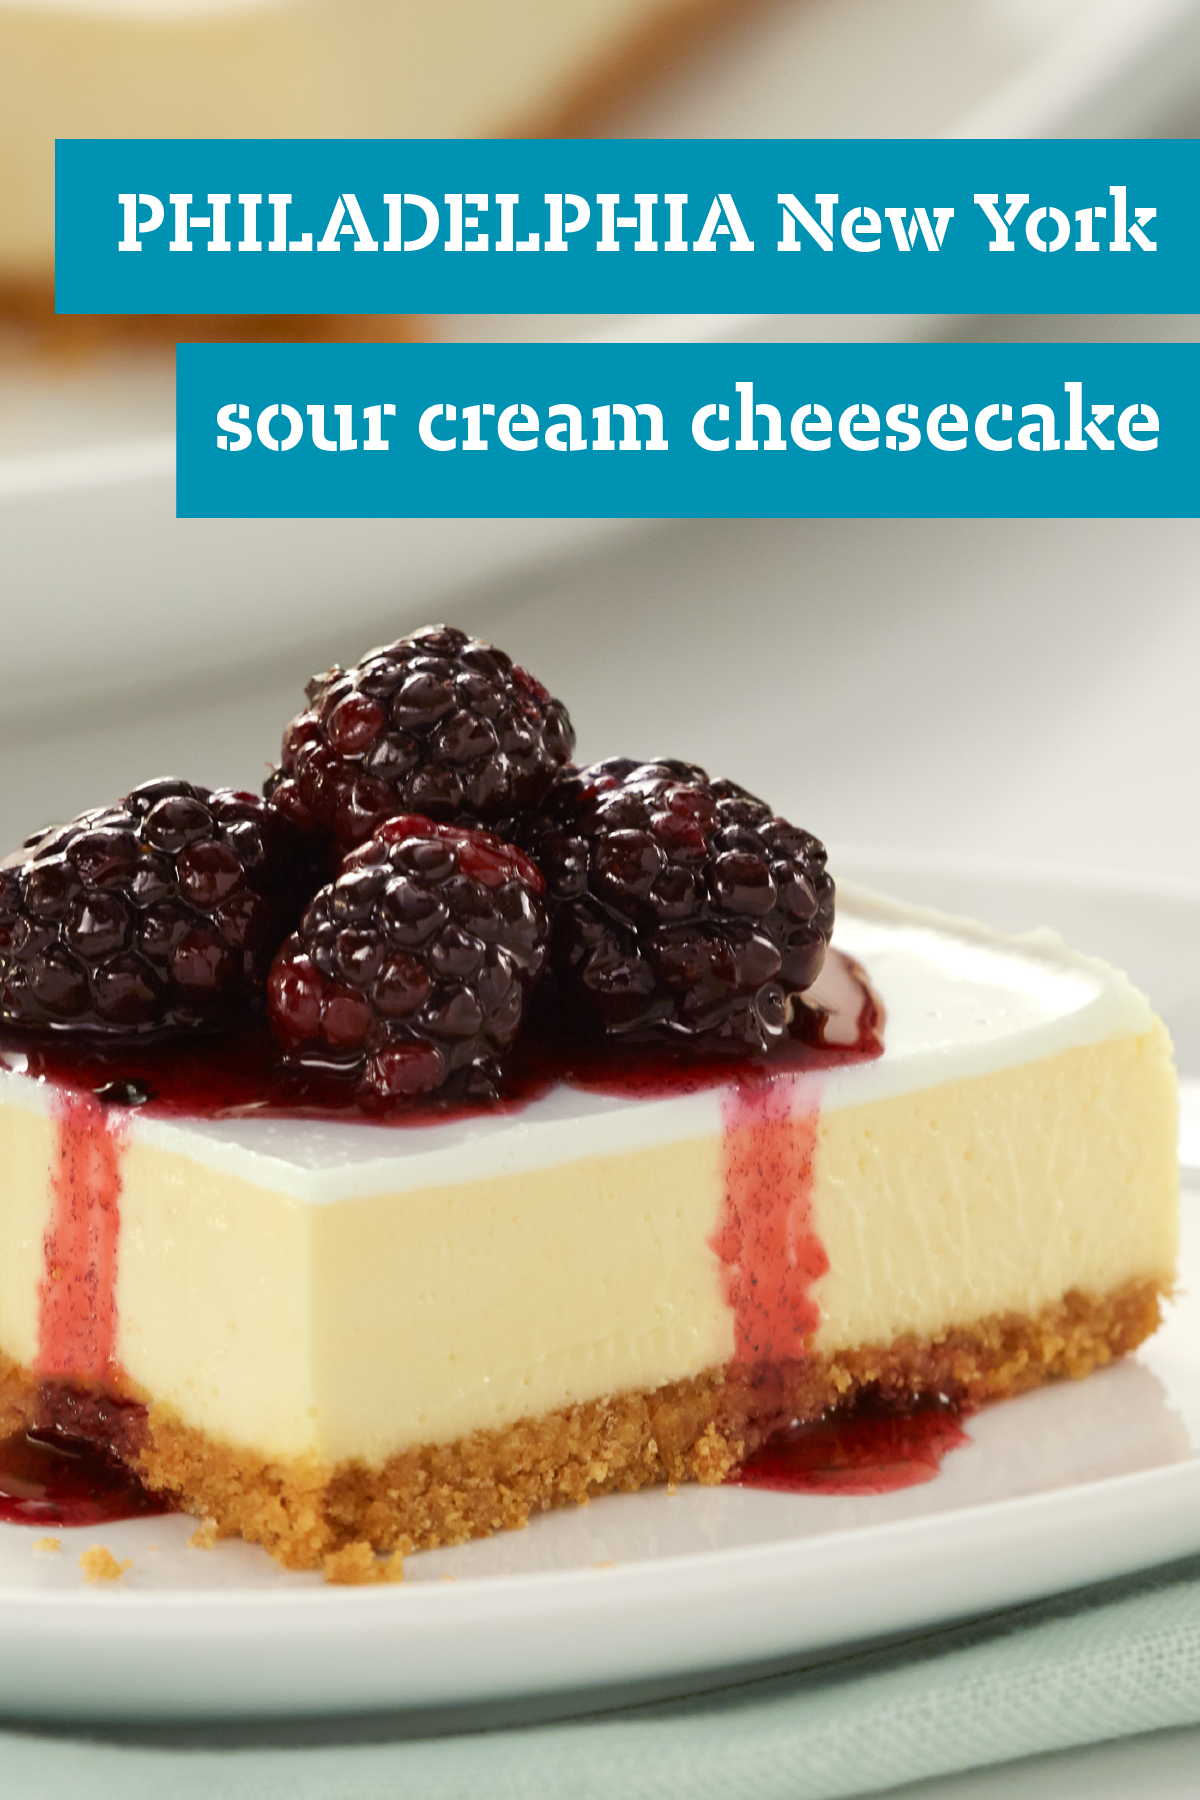 Philadelphia New York Style Sour Cream Topped Cheesecake Recipe Cake Recipe With Sour Cream Sour Cream Recipes Cheesecake Recipes